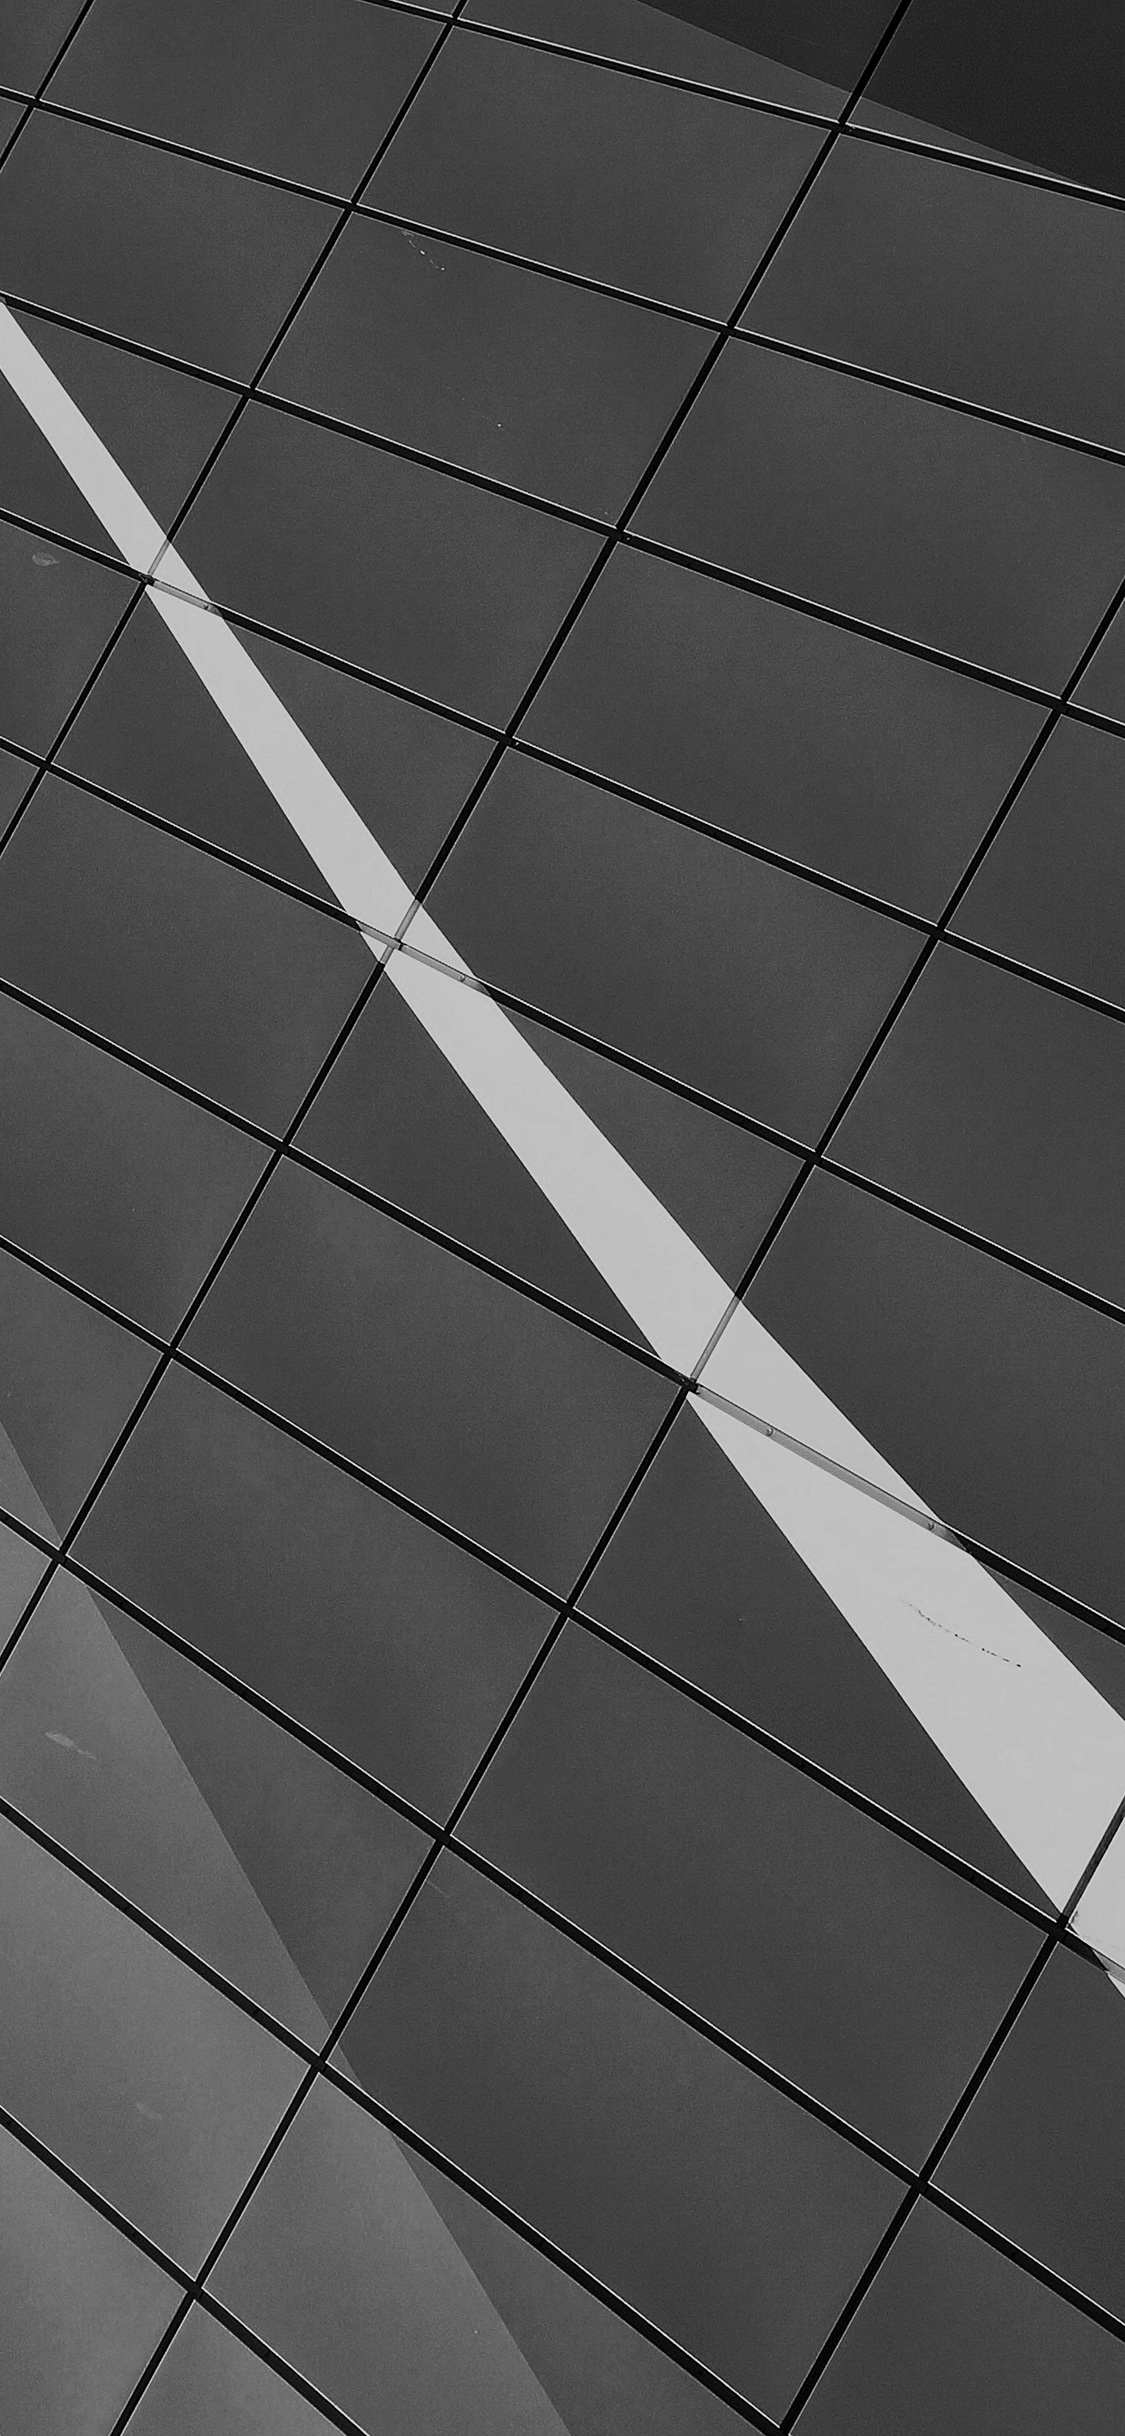 iPhonexpapers.com-Apple-iPhone-wallpaper-vr18-building-window-bw-pattern-dark